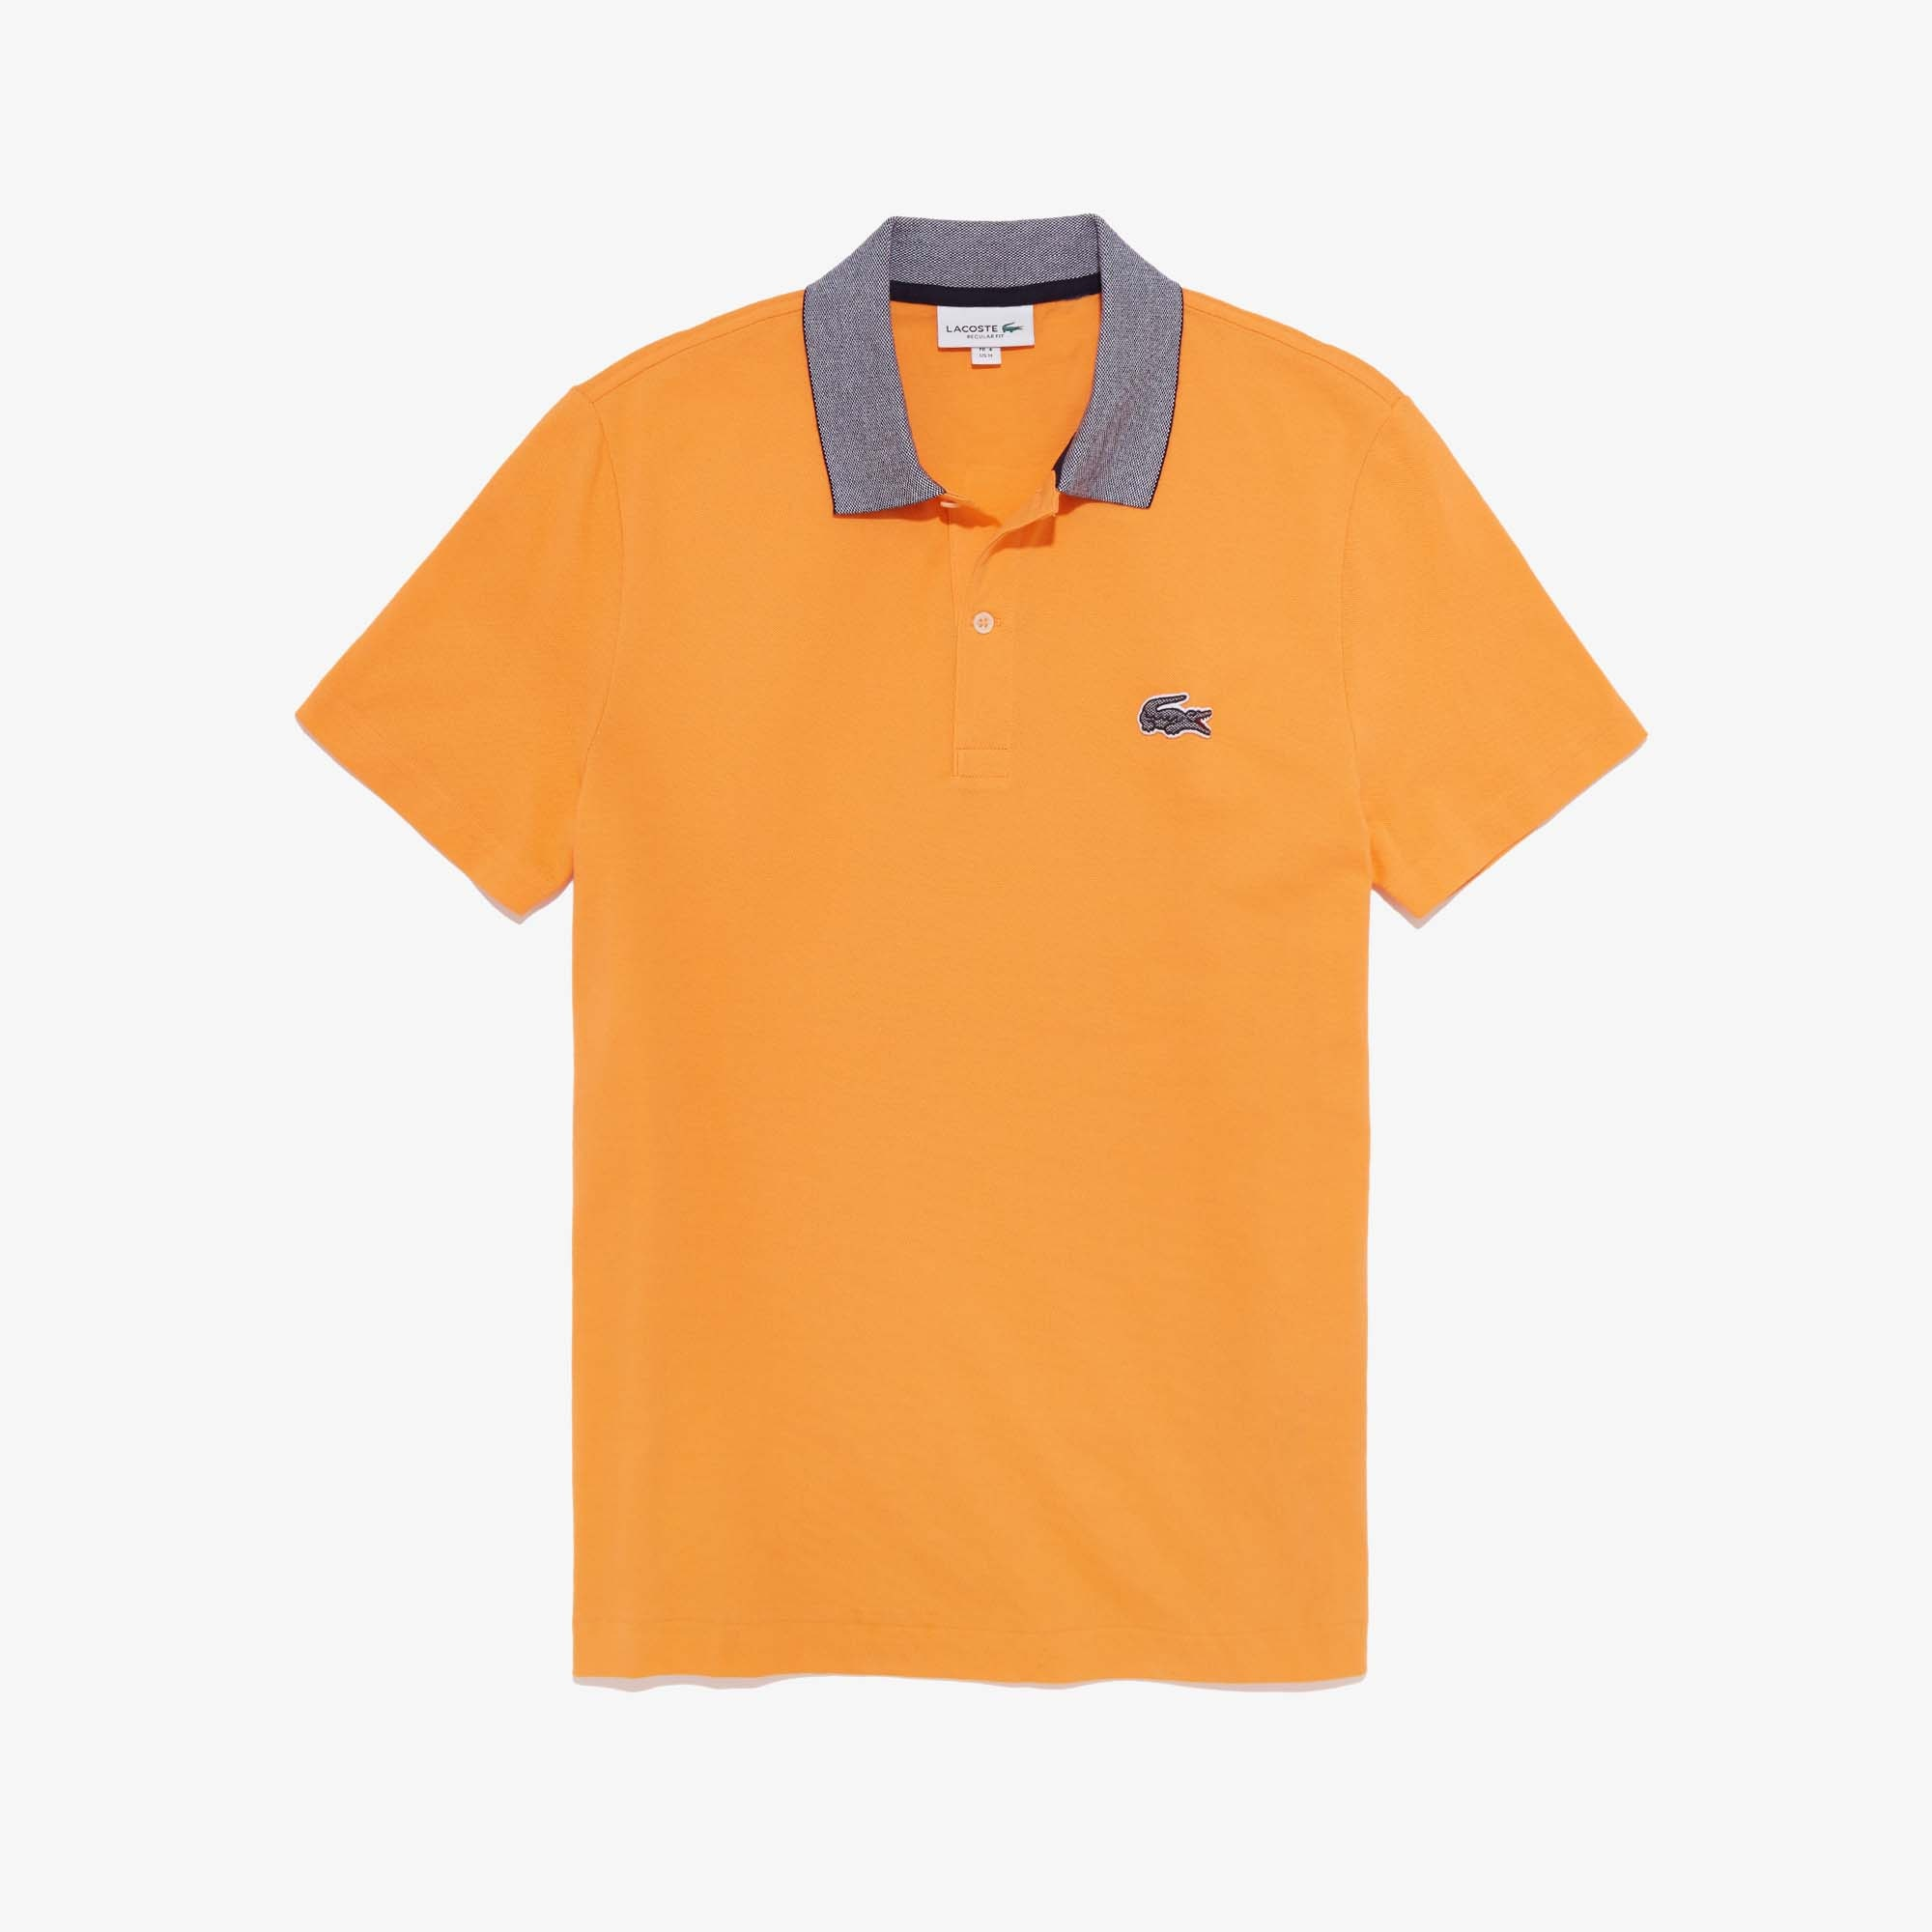 Lacoste Shorts Men's Regular Fit Short-Sleeve Polo